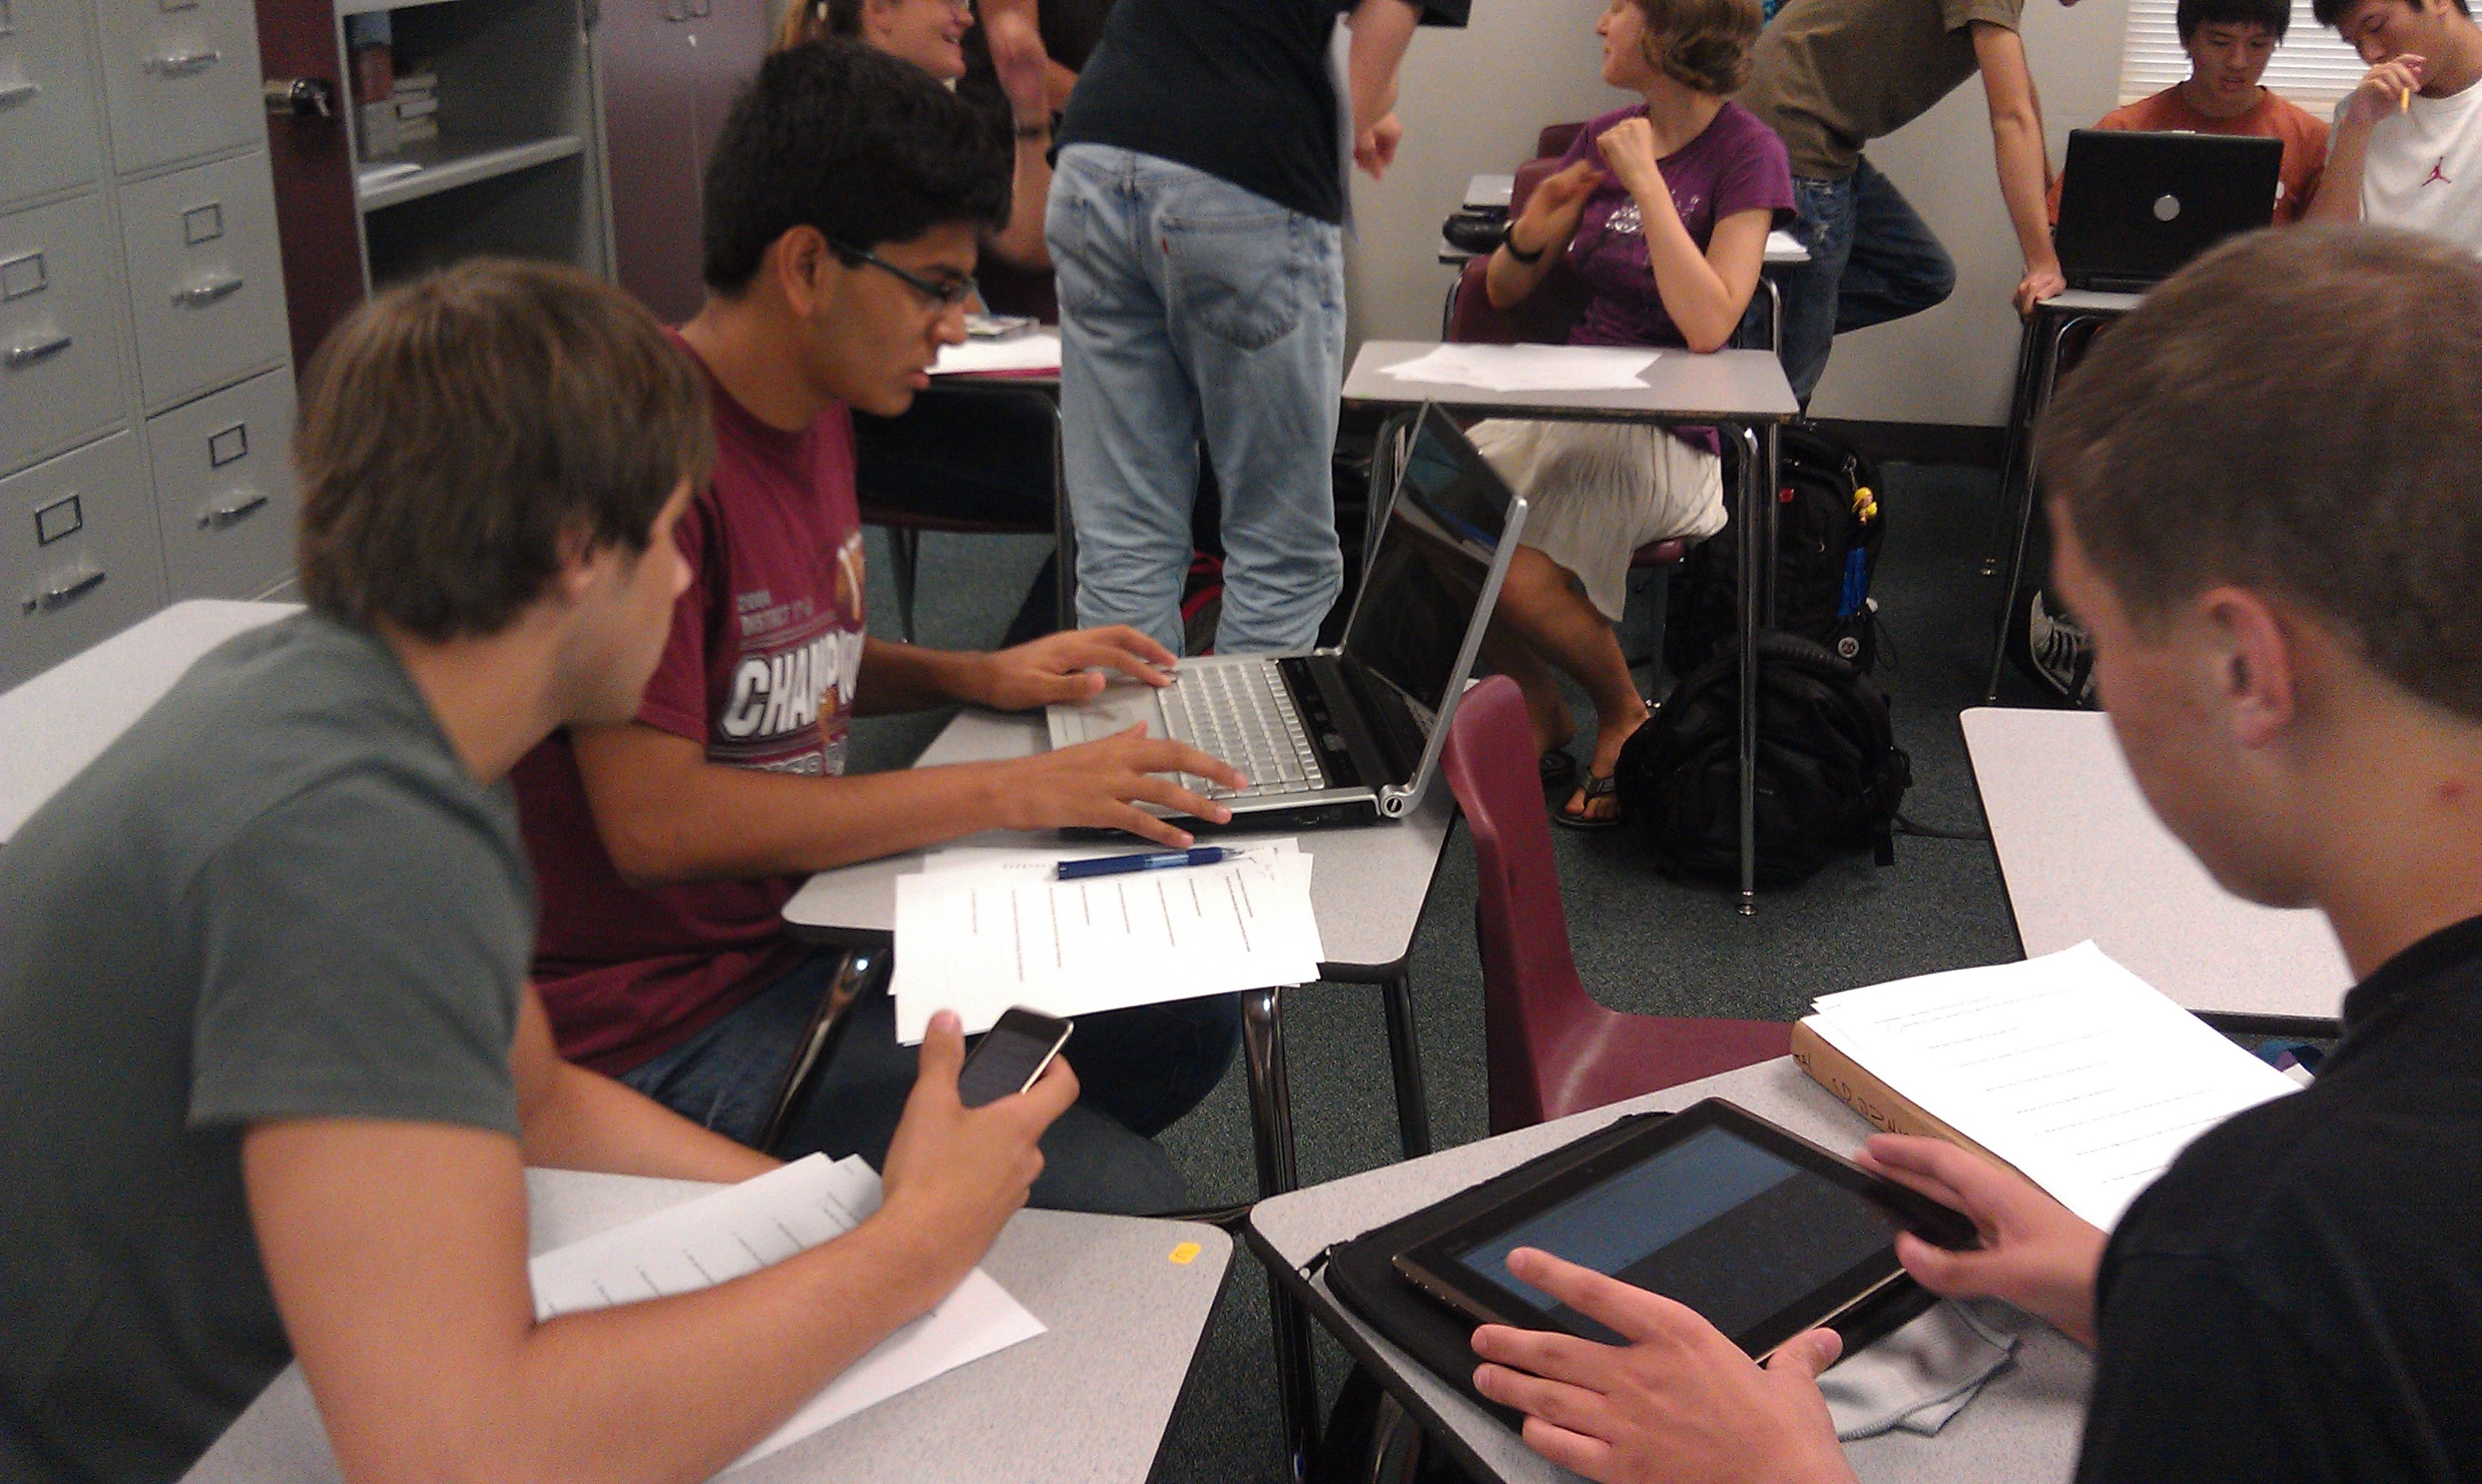 BYOD in education